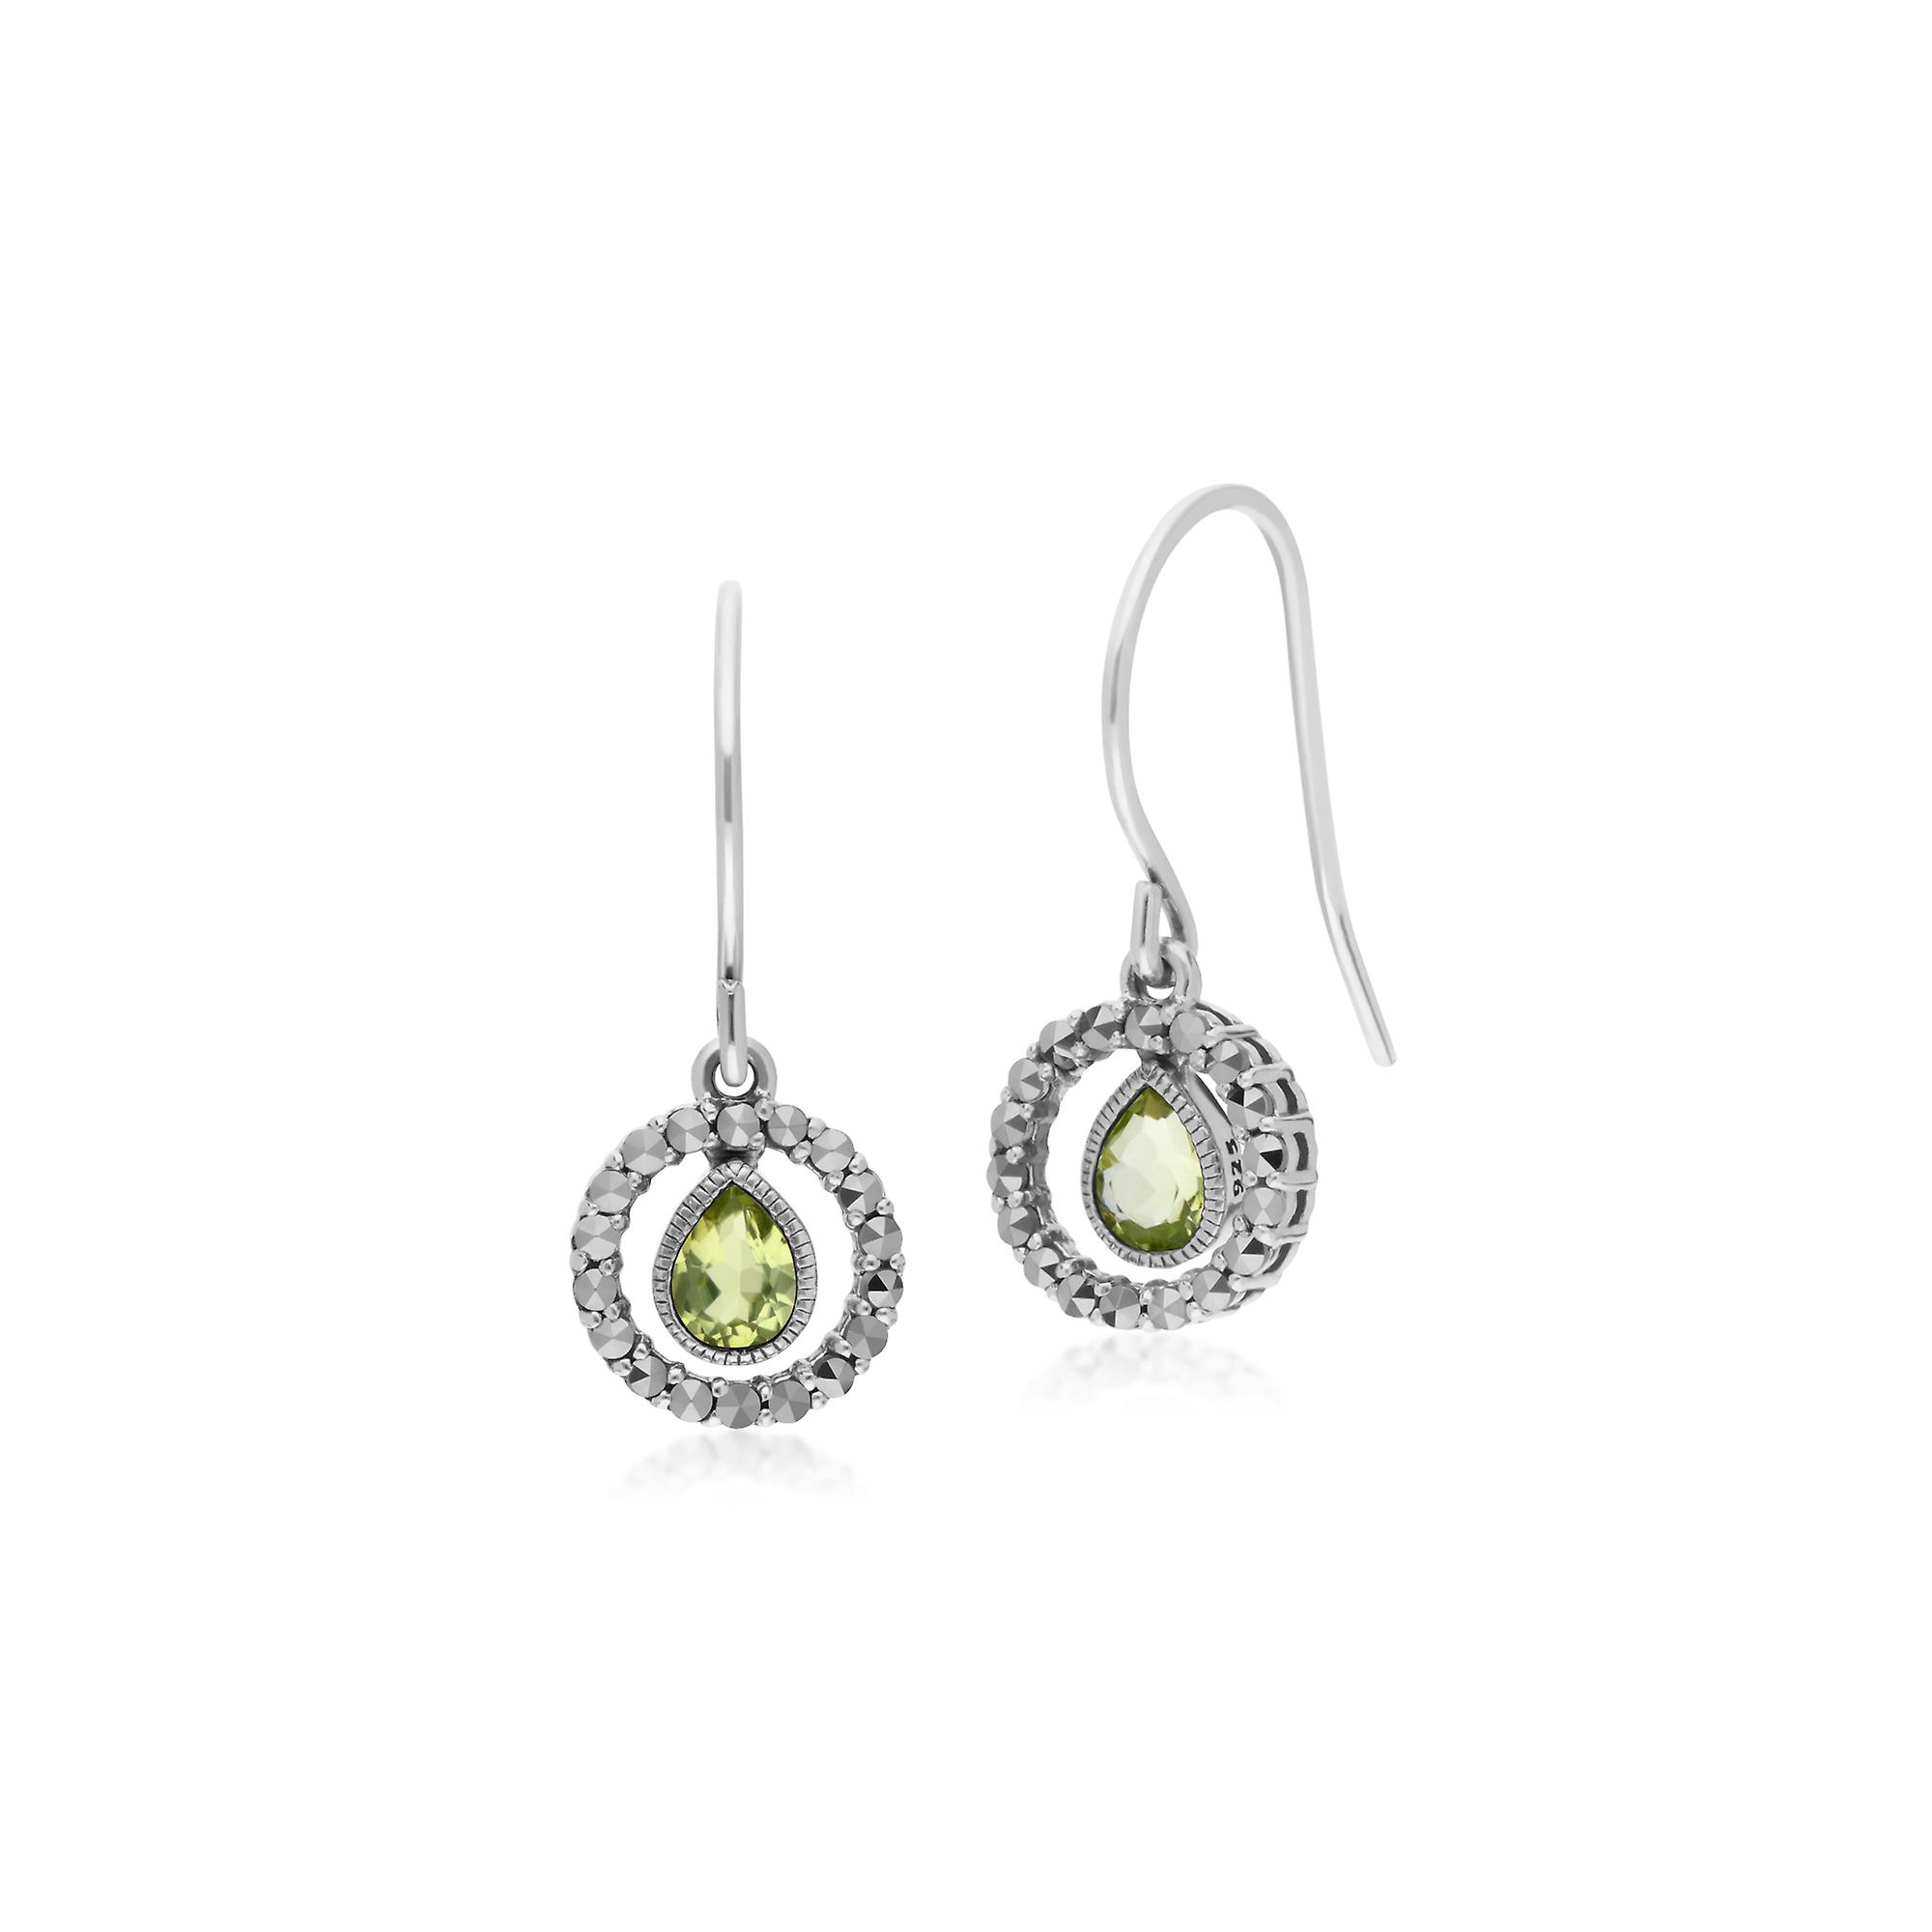 Gemondo Sterling Silver Tear Drop Peridot and Round Marcasite Drop Earrings